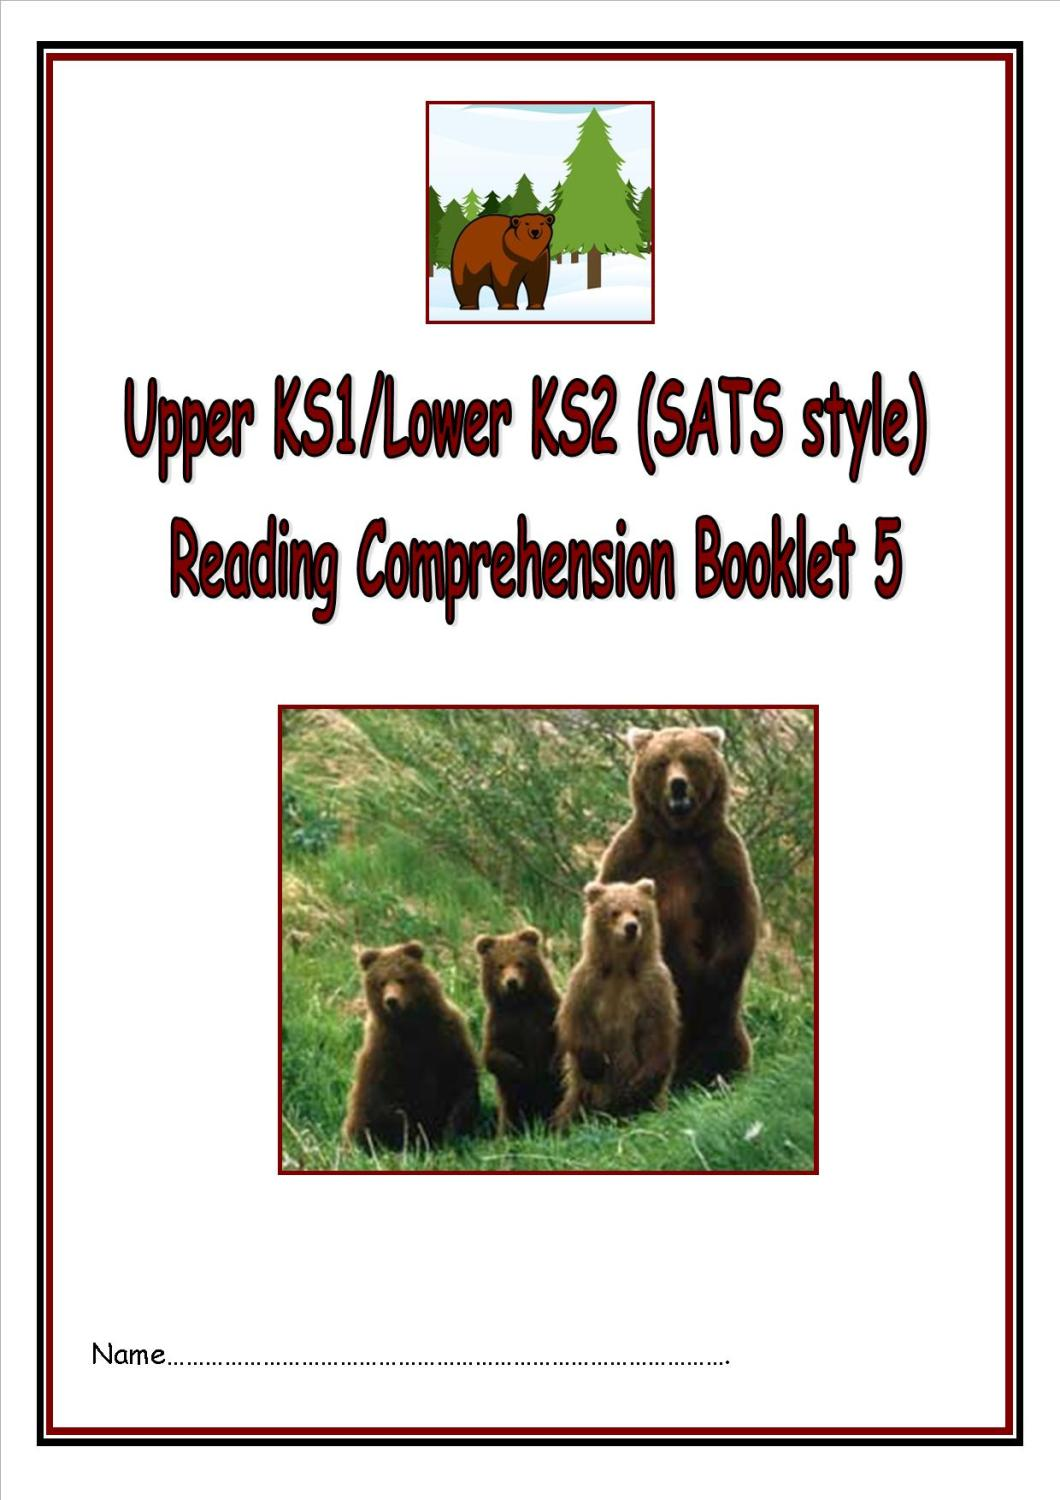 New KS1/LKS2 SATs style reading comprehension booklet (4).